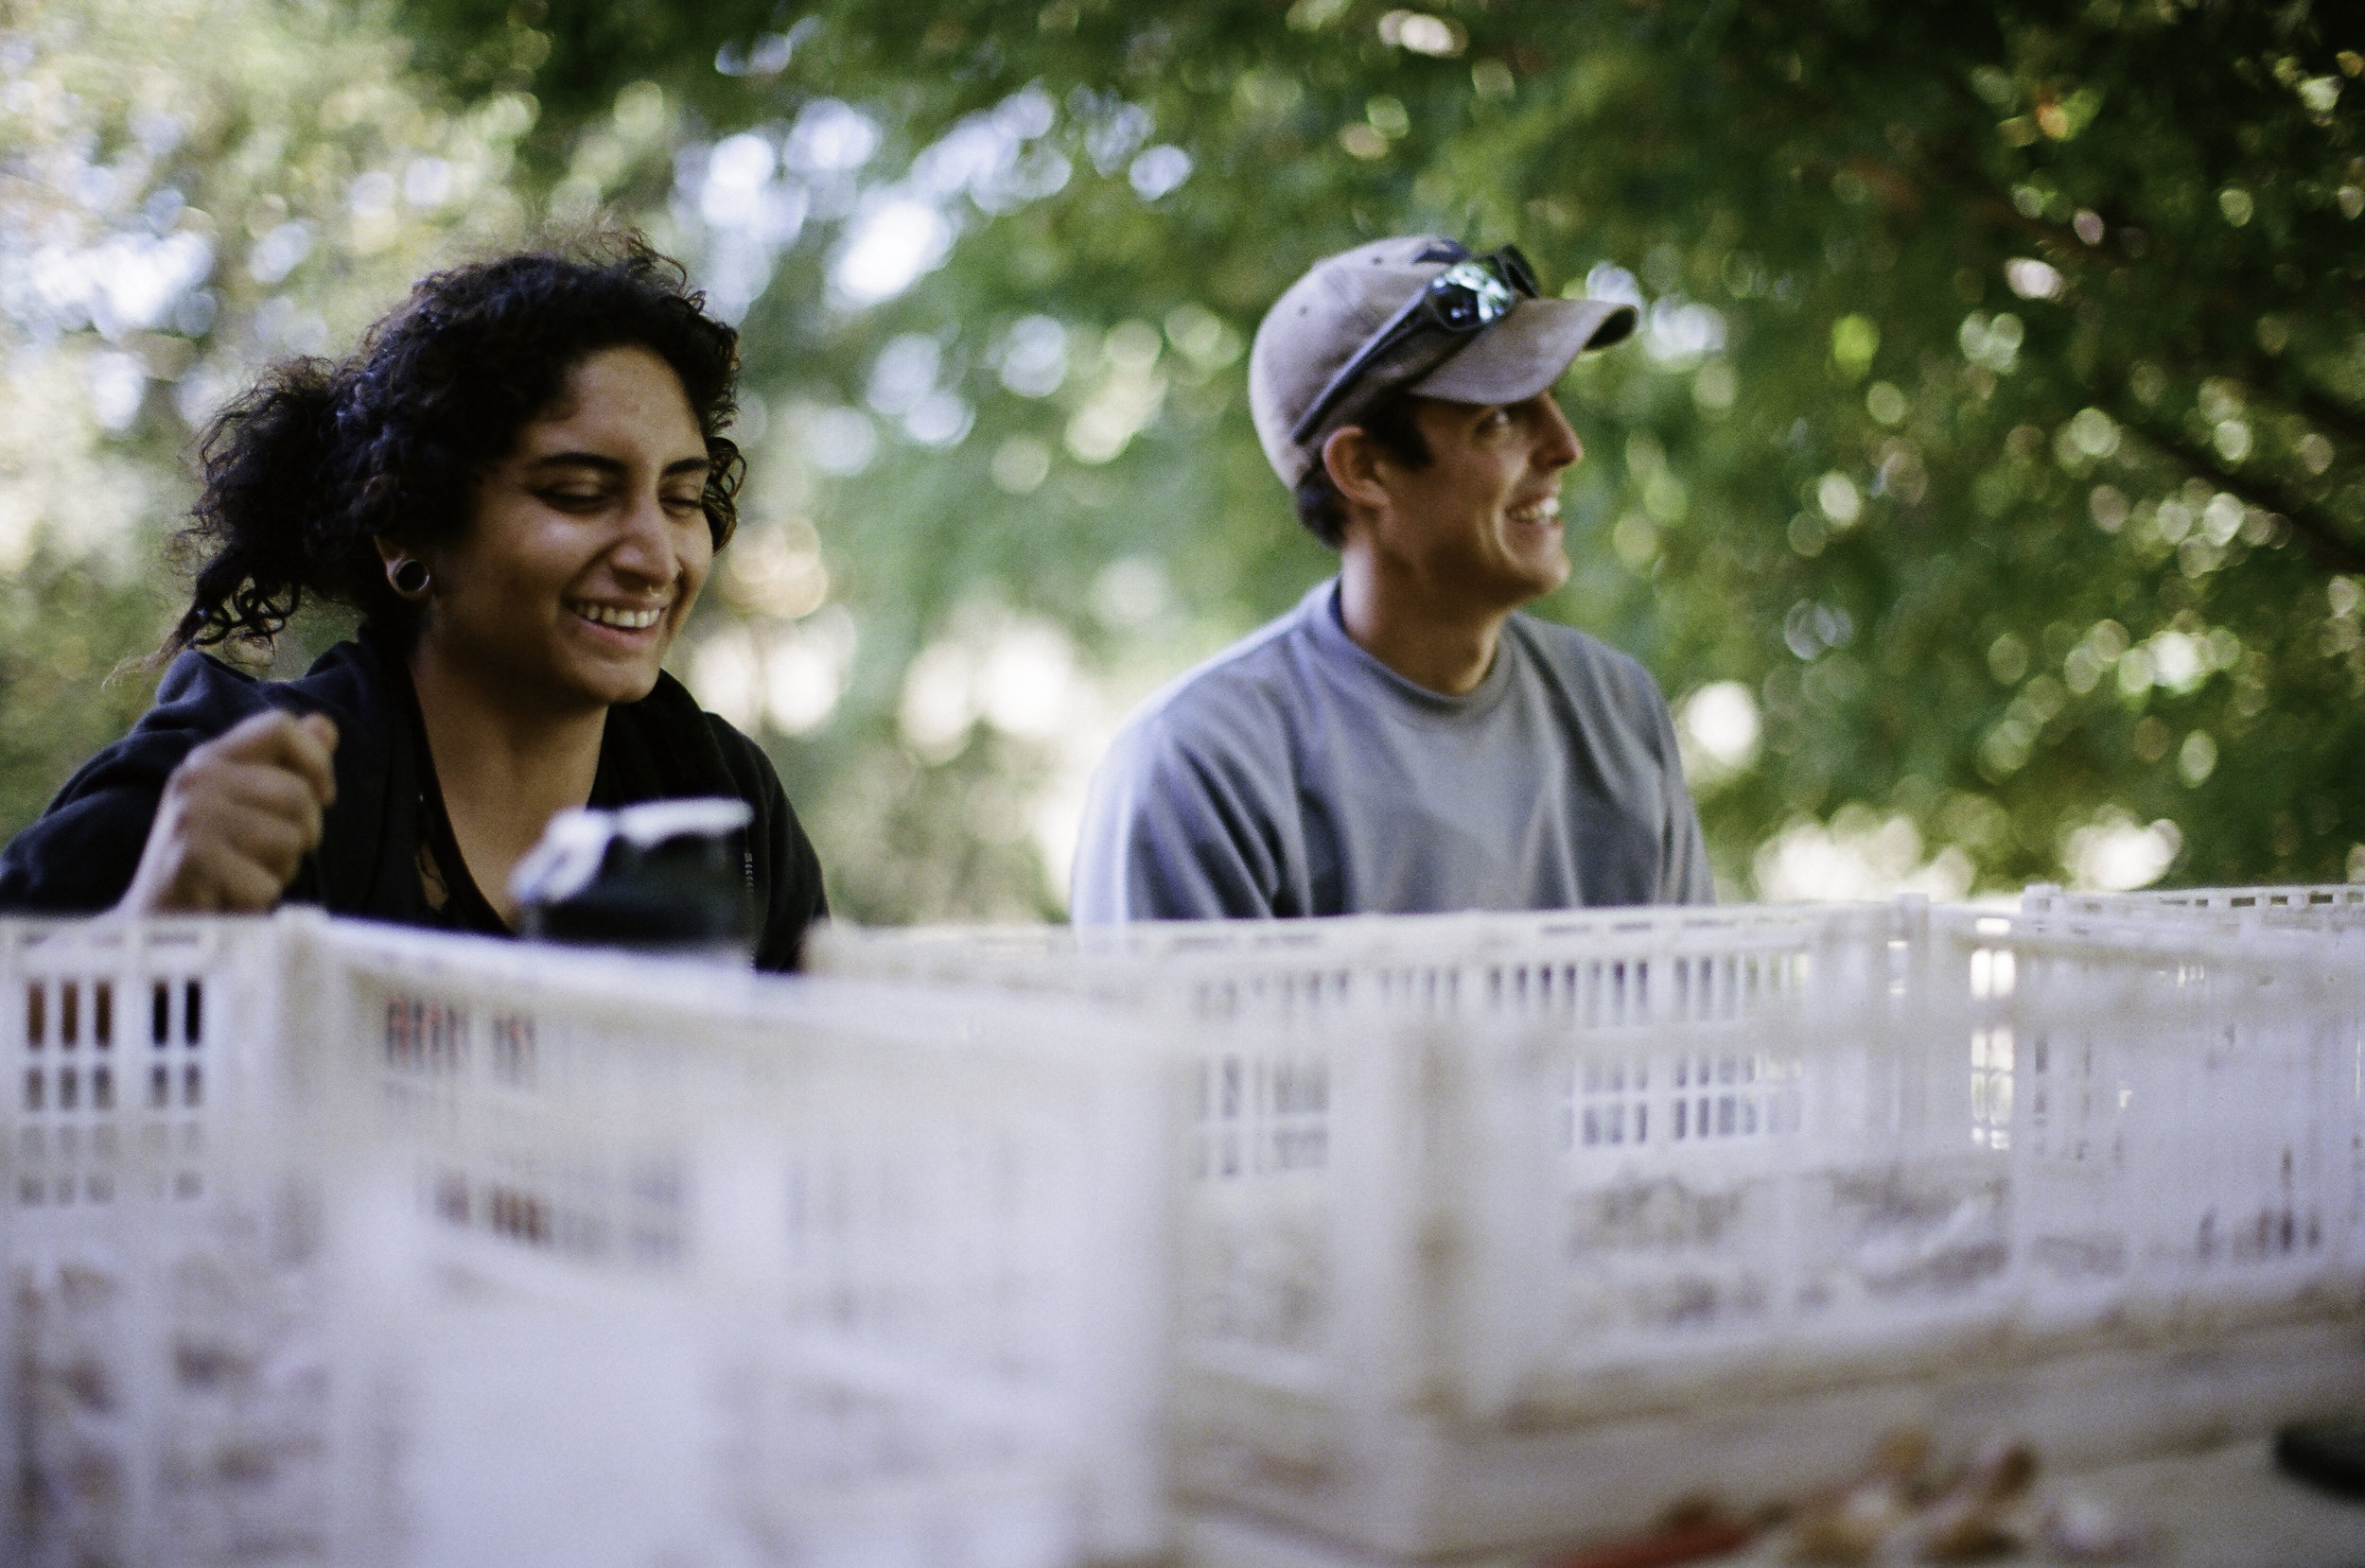 Zahra  Hooshyar  and  Gerardo Patron-Cano are pursuing careers in agriculture.  They broke open roughly 2500 cloves and competed to see who could find the biggest one.